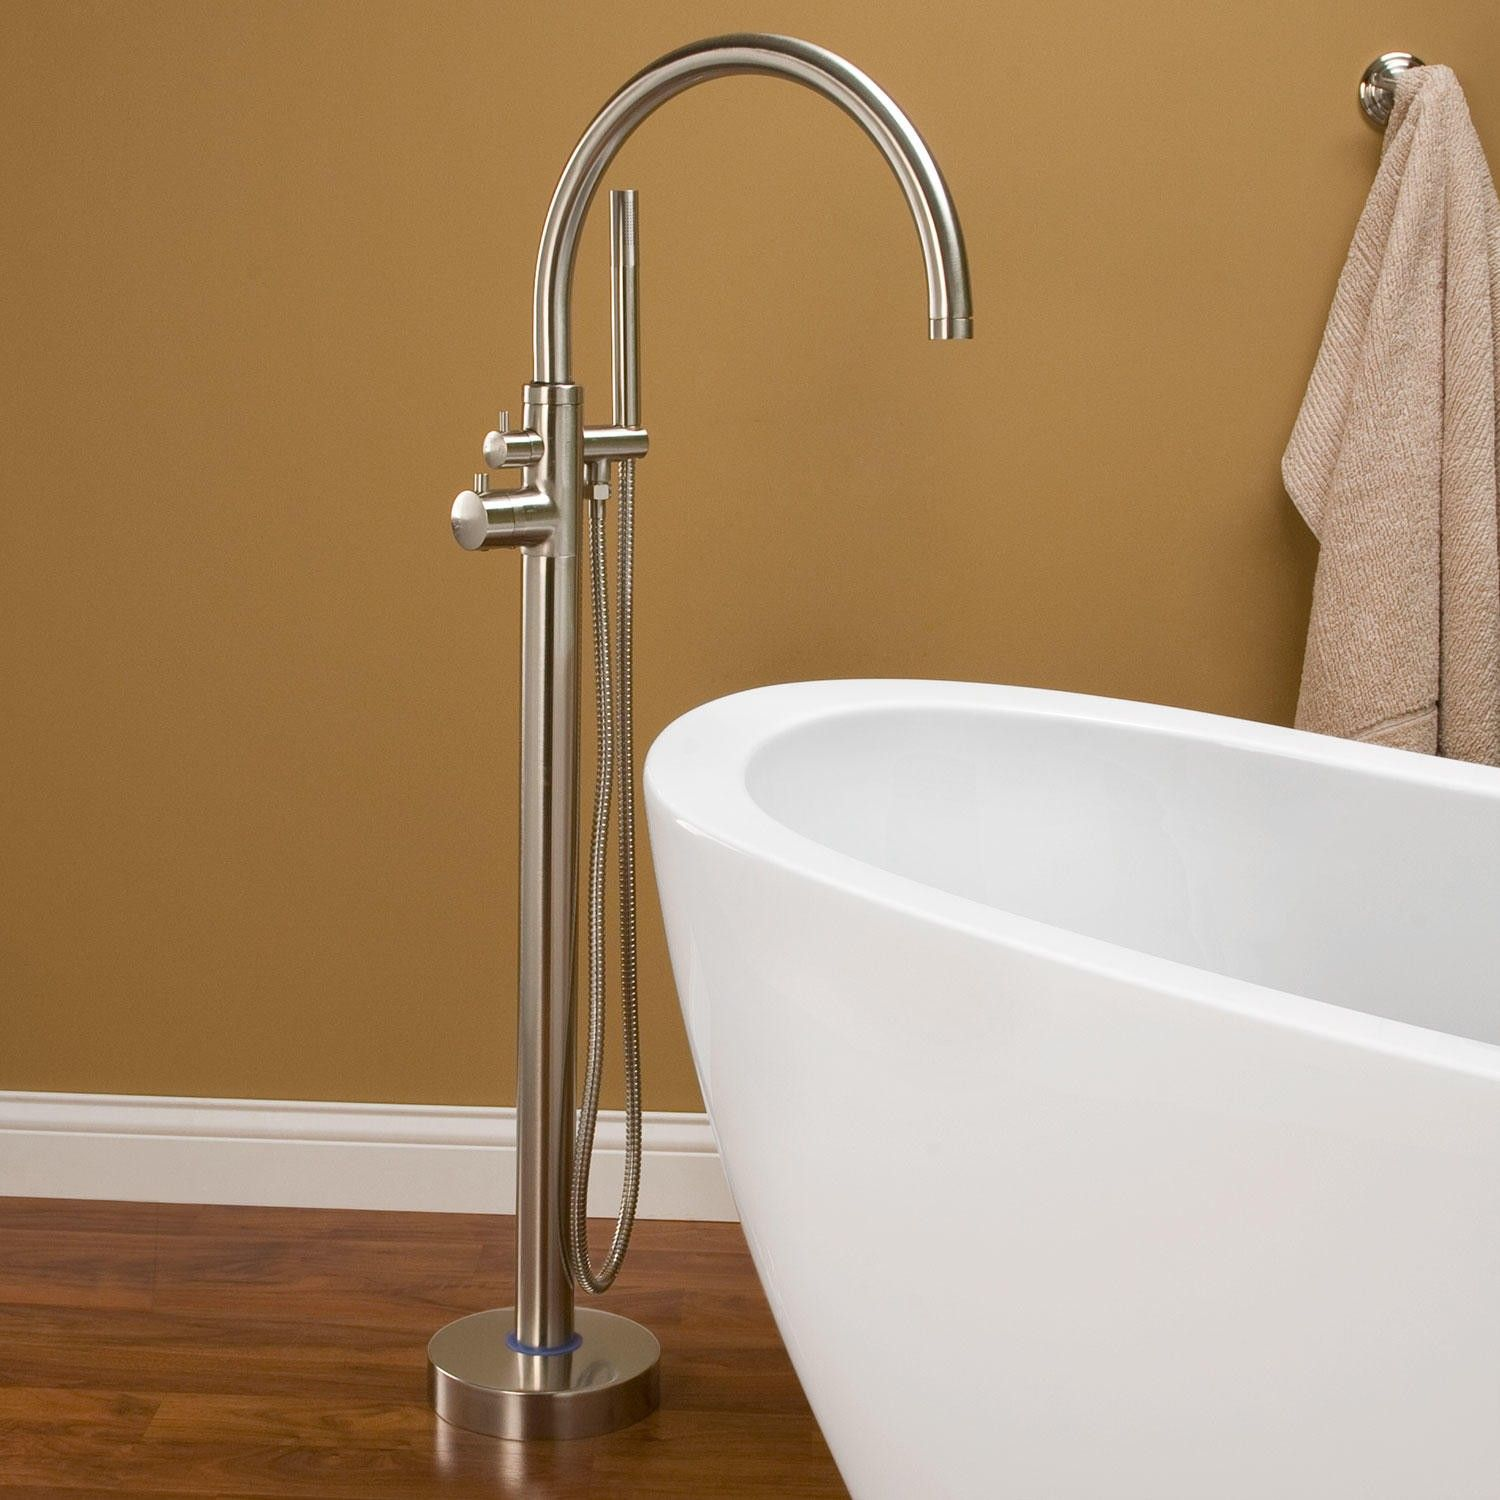 Linnea Freestanding Thermostatic Tub Faucet Freestanding Tub - Wall faucet for freestanding tub